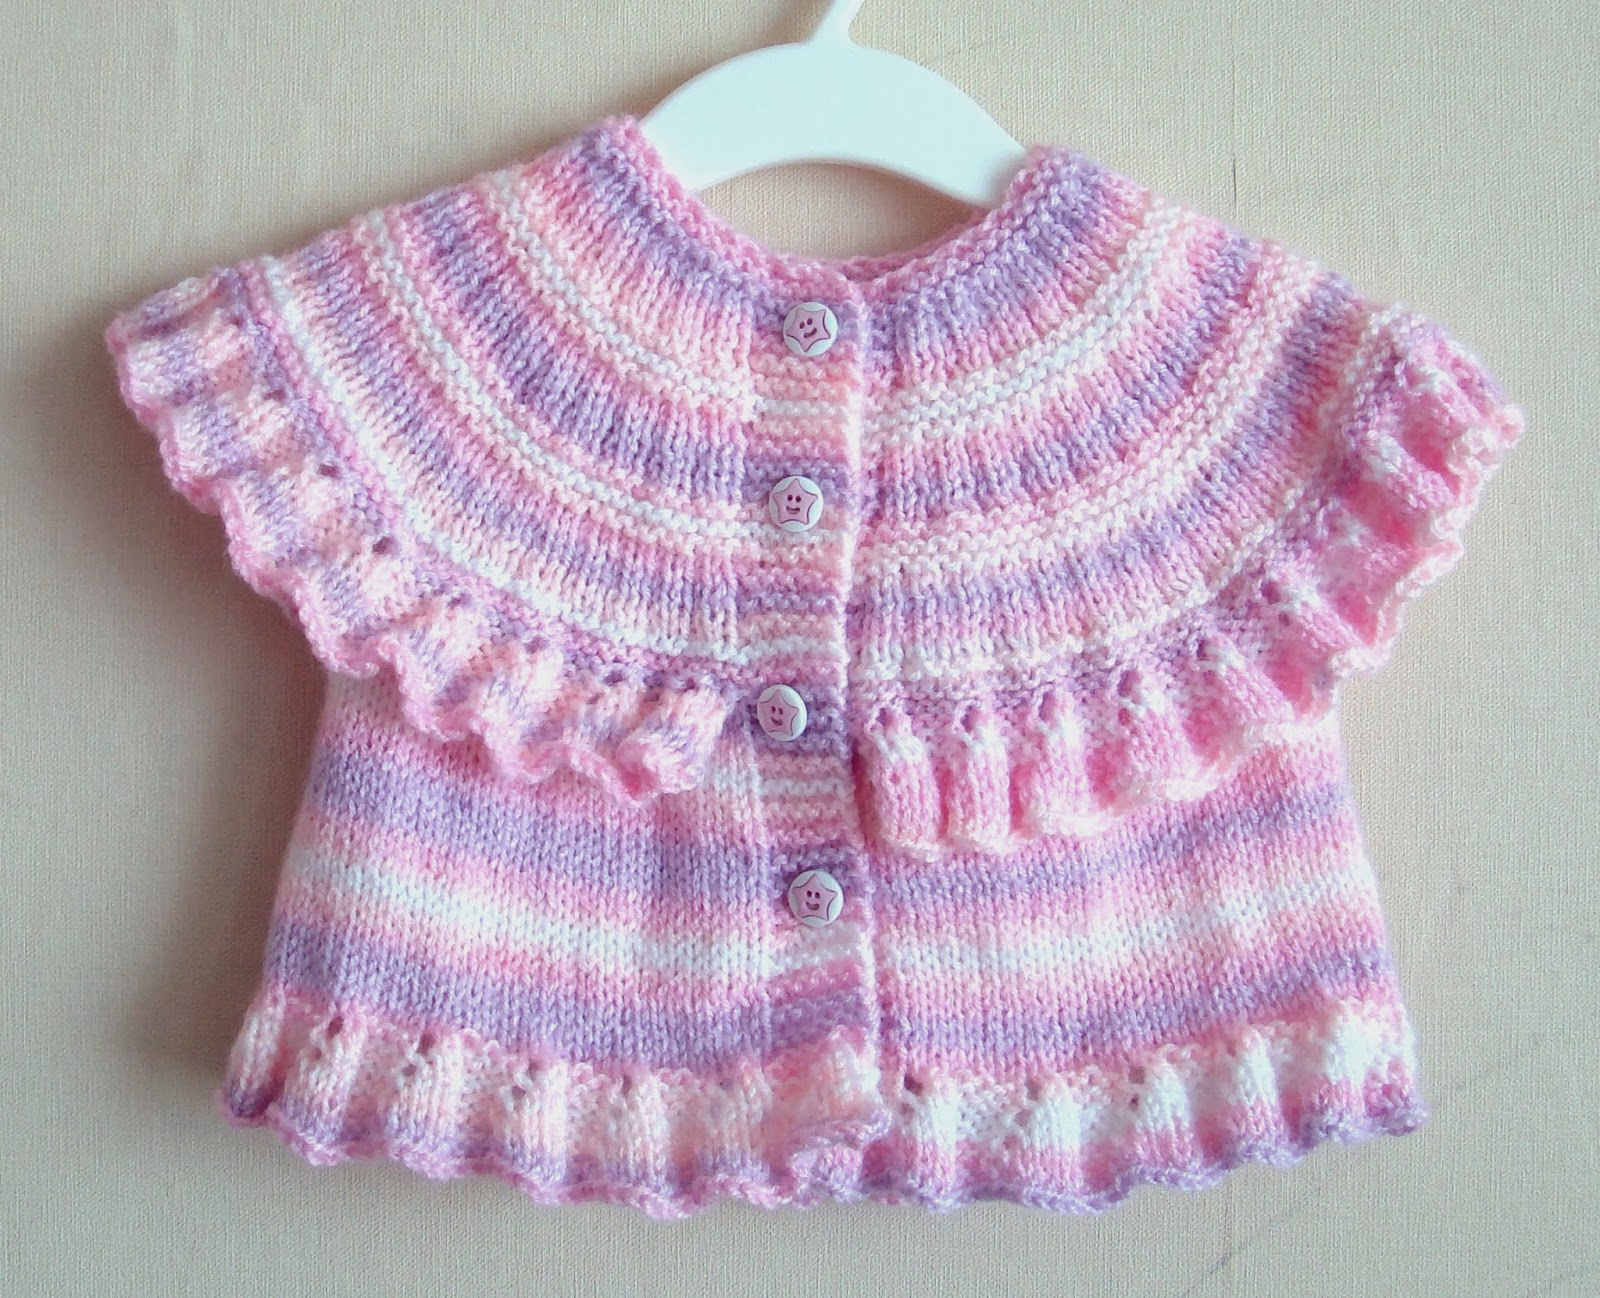 Knitted Baby Vest Pattern : Knitting Pattern for Ruffle Baby Vest ~ Pure Craft